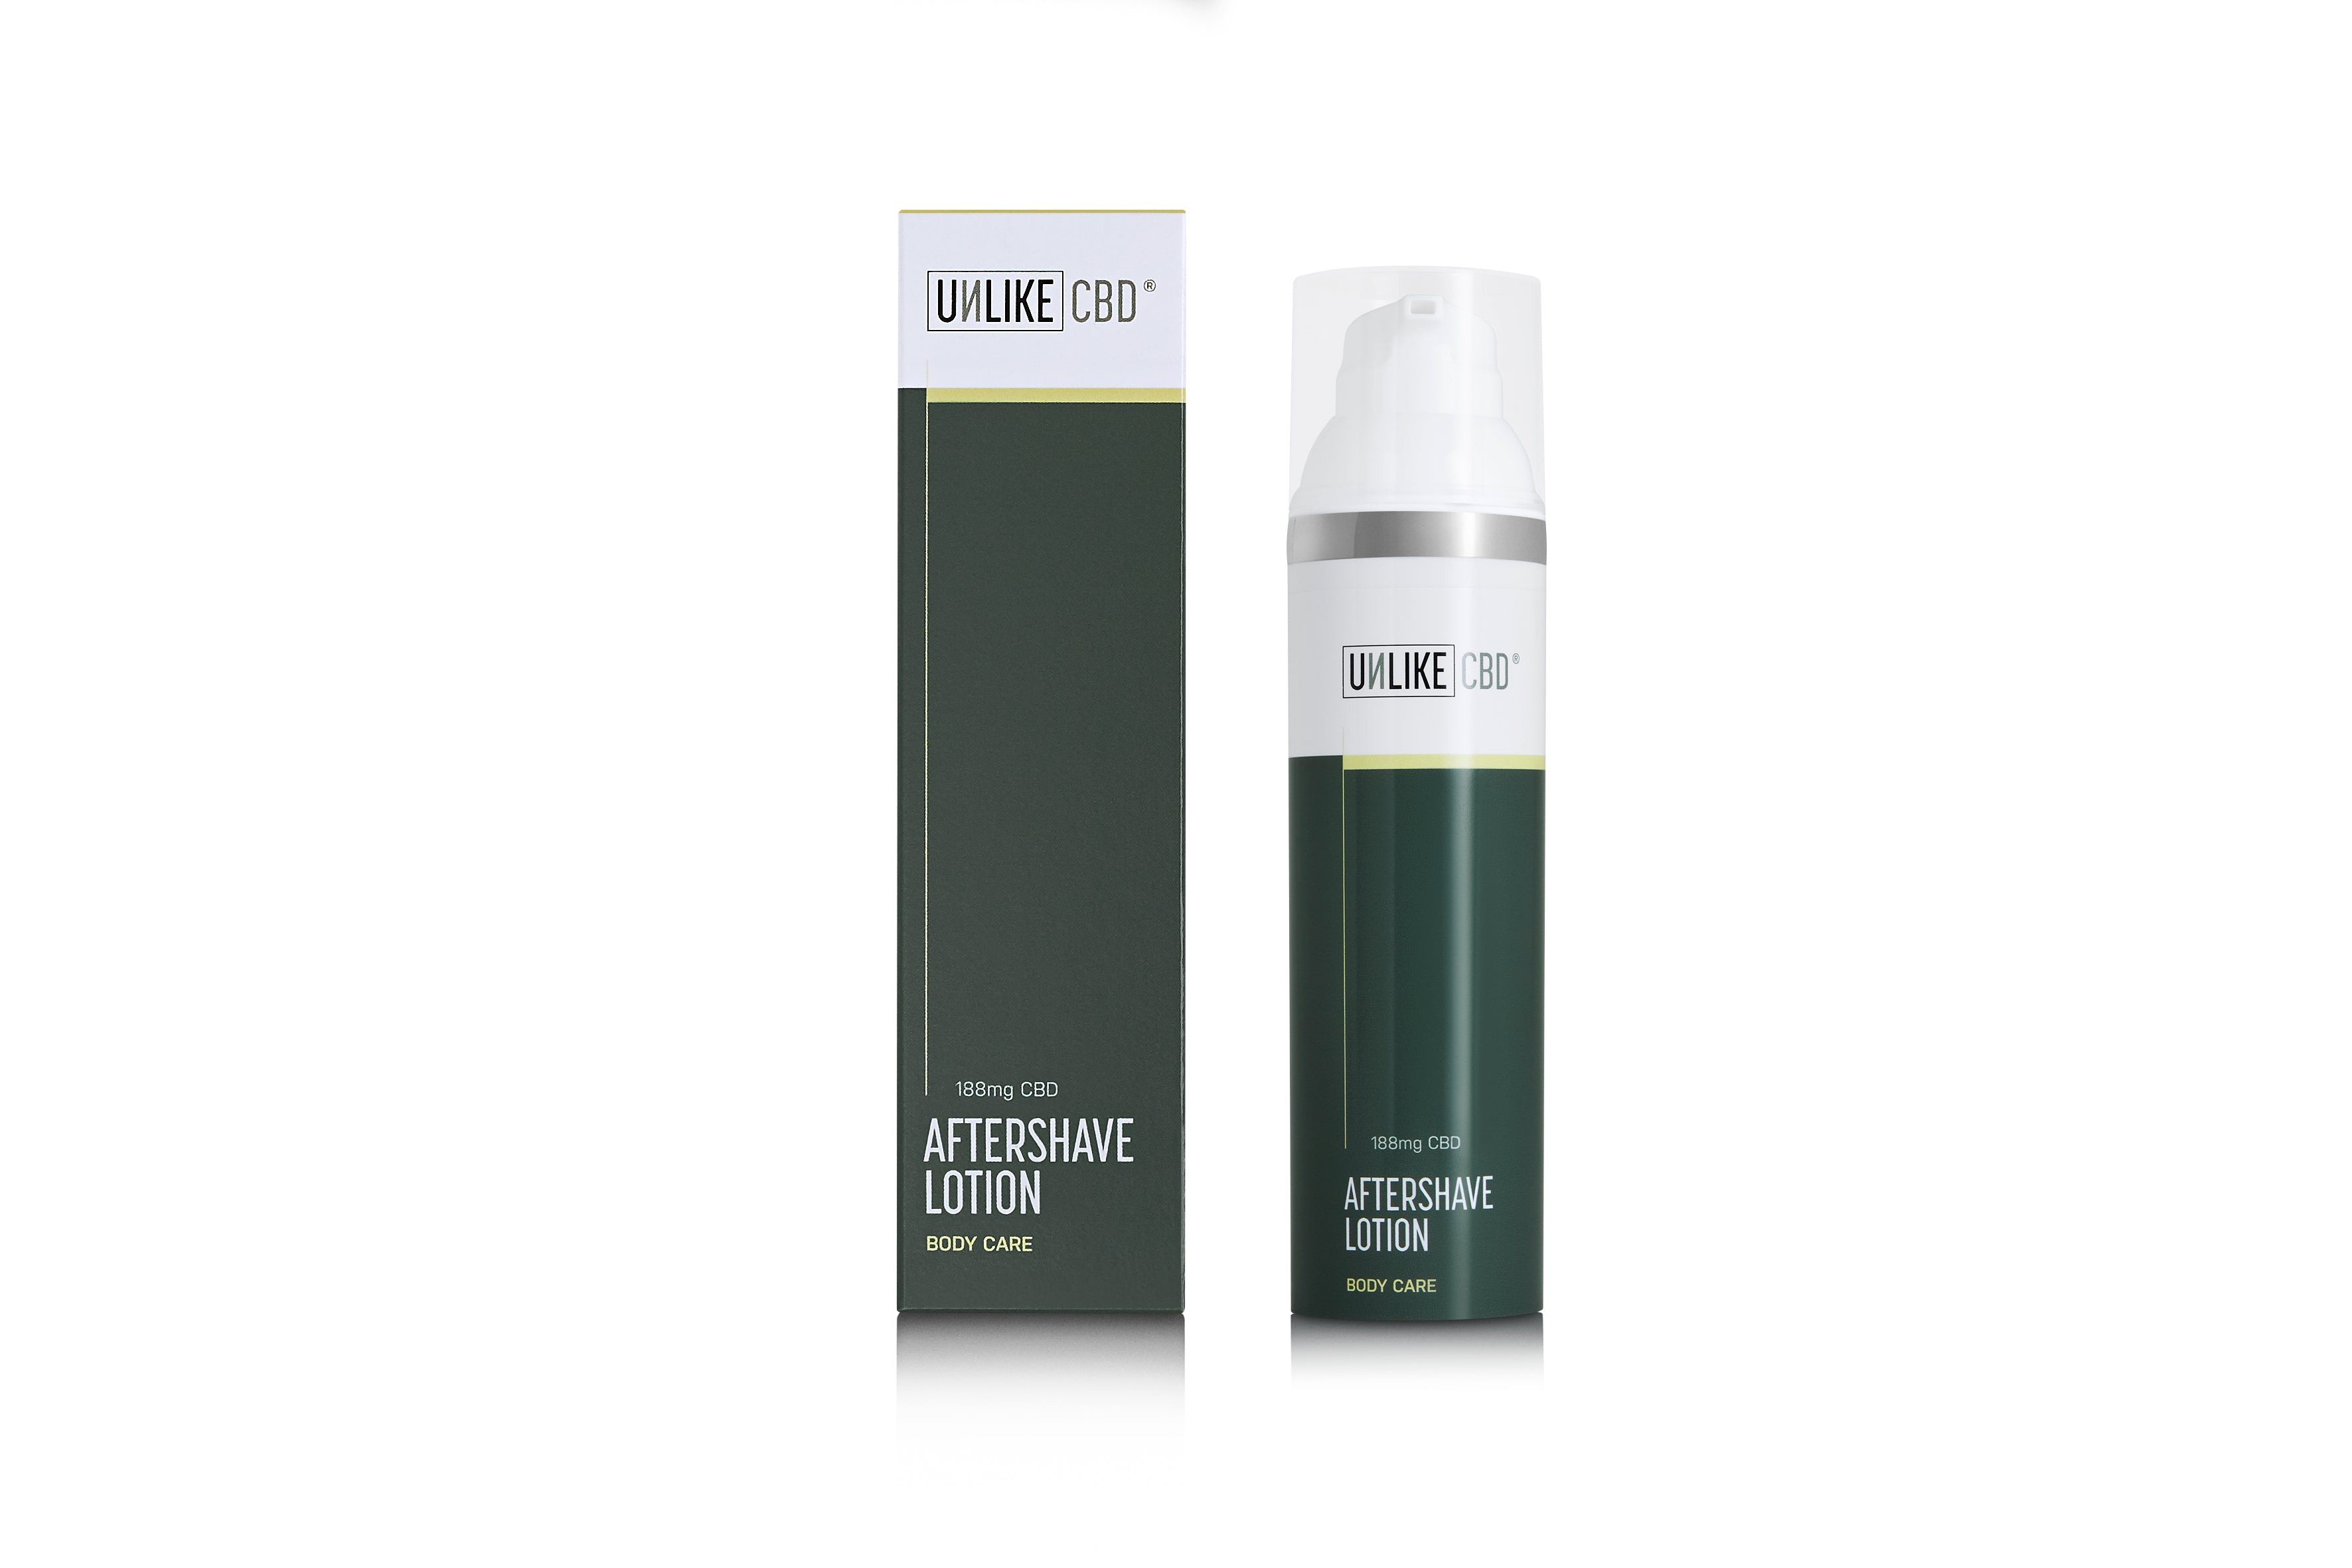 Aftershave Lotion (188mg CBD) | 75ml